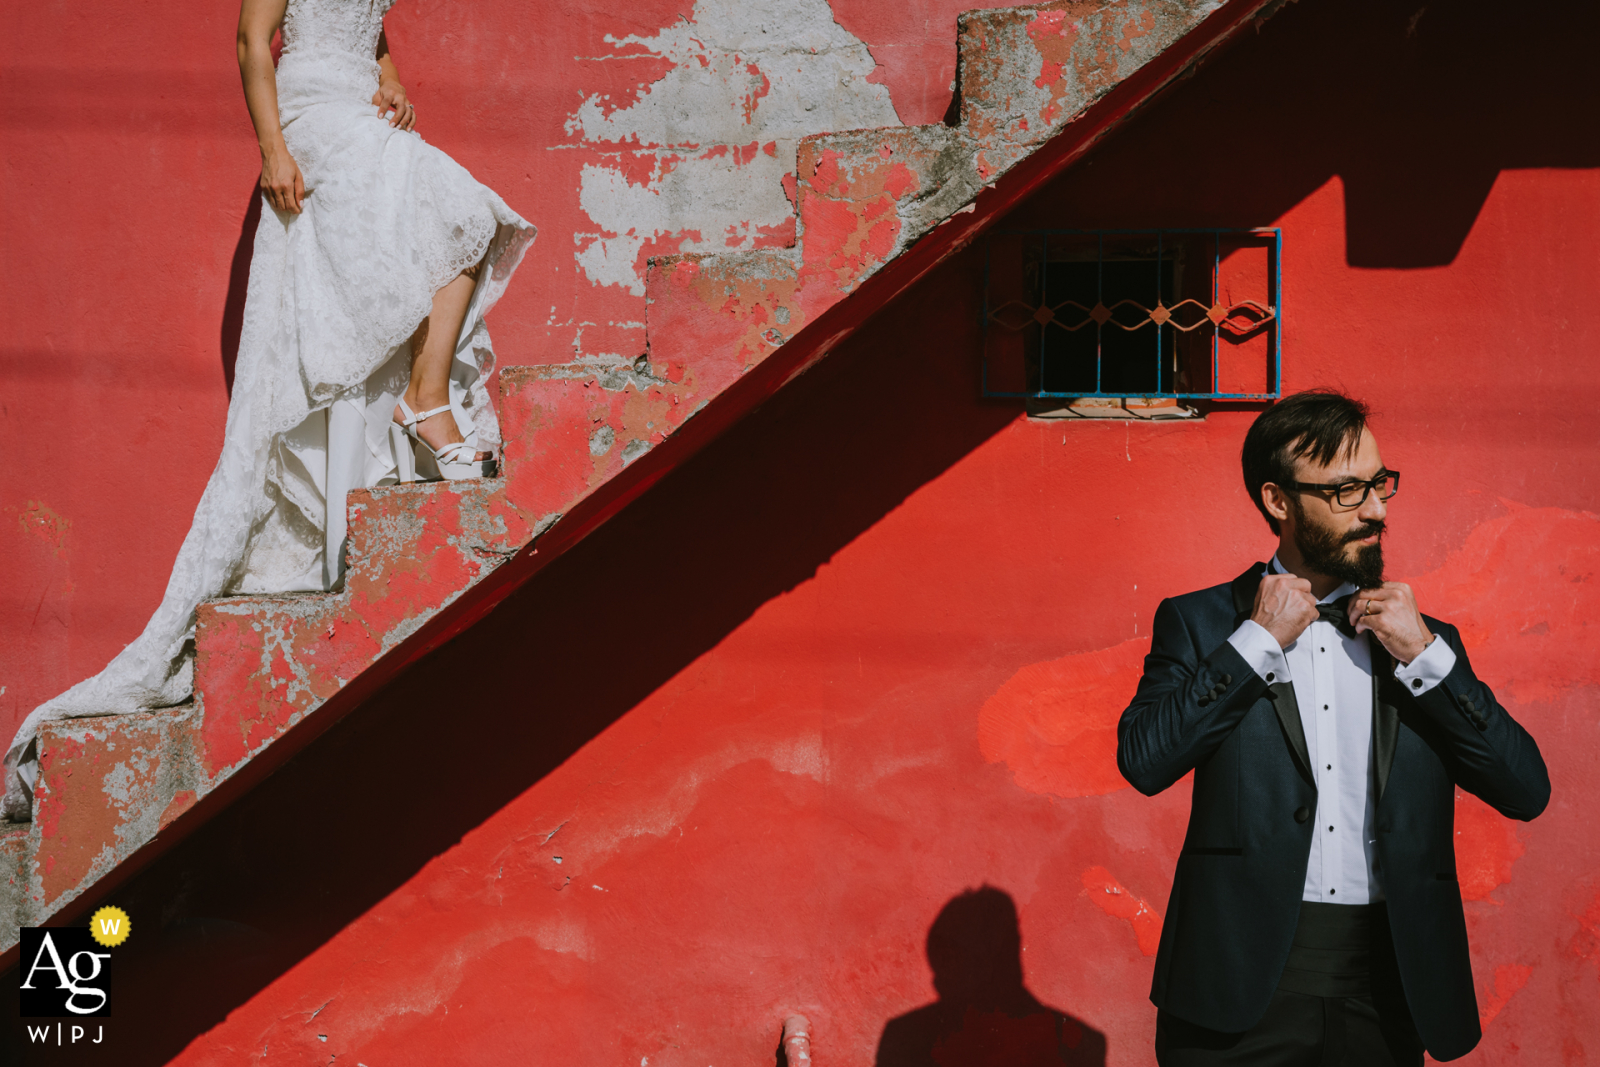 Istanbul wedding photographer captured a bride on the stairs and the groom down the stairs on a red background in Kadıköy